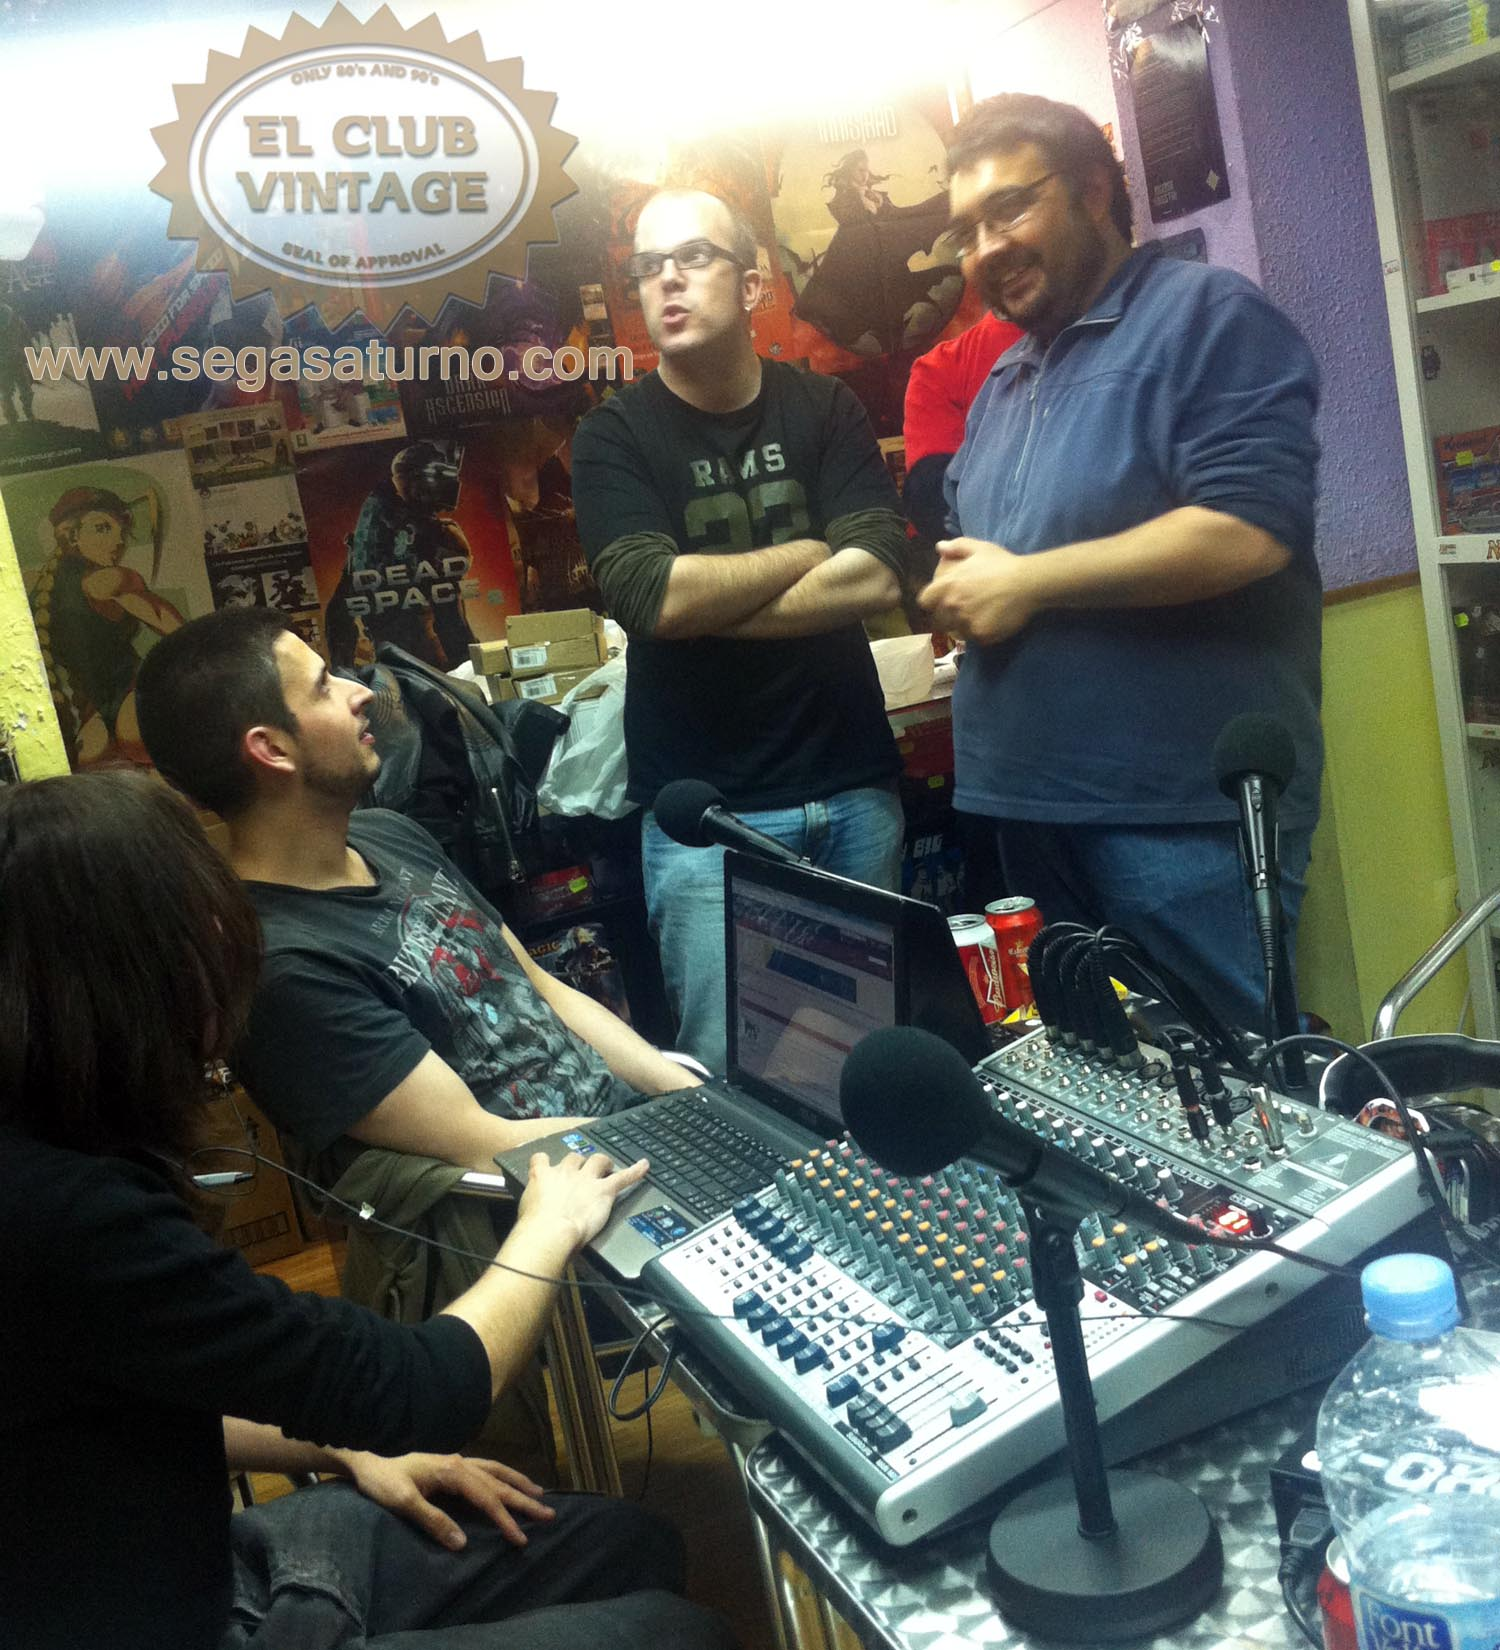 shenmue evilryu y cia el club vintage podcast play games and cards tienda